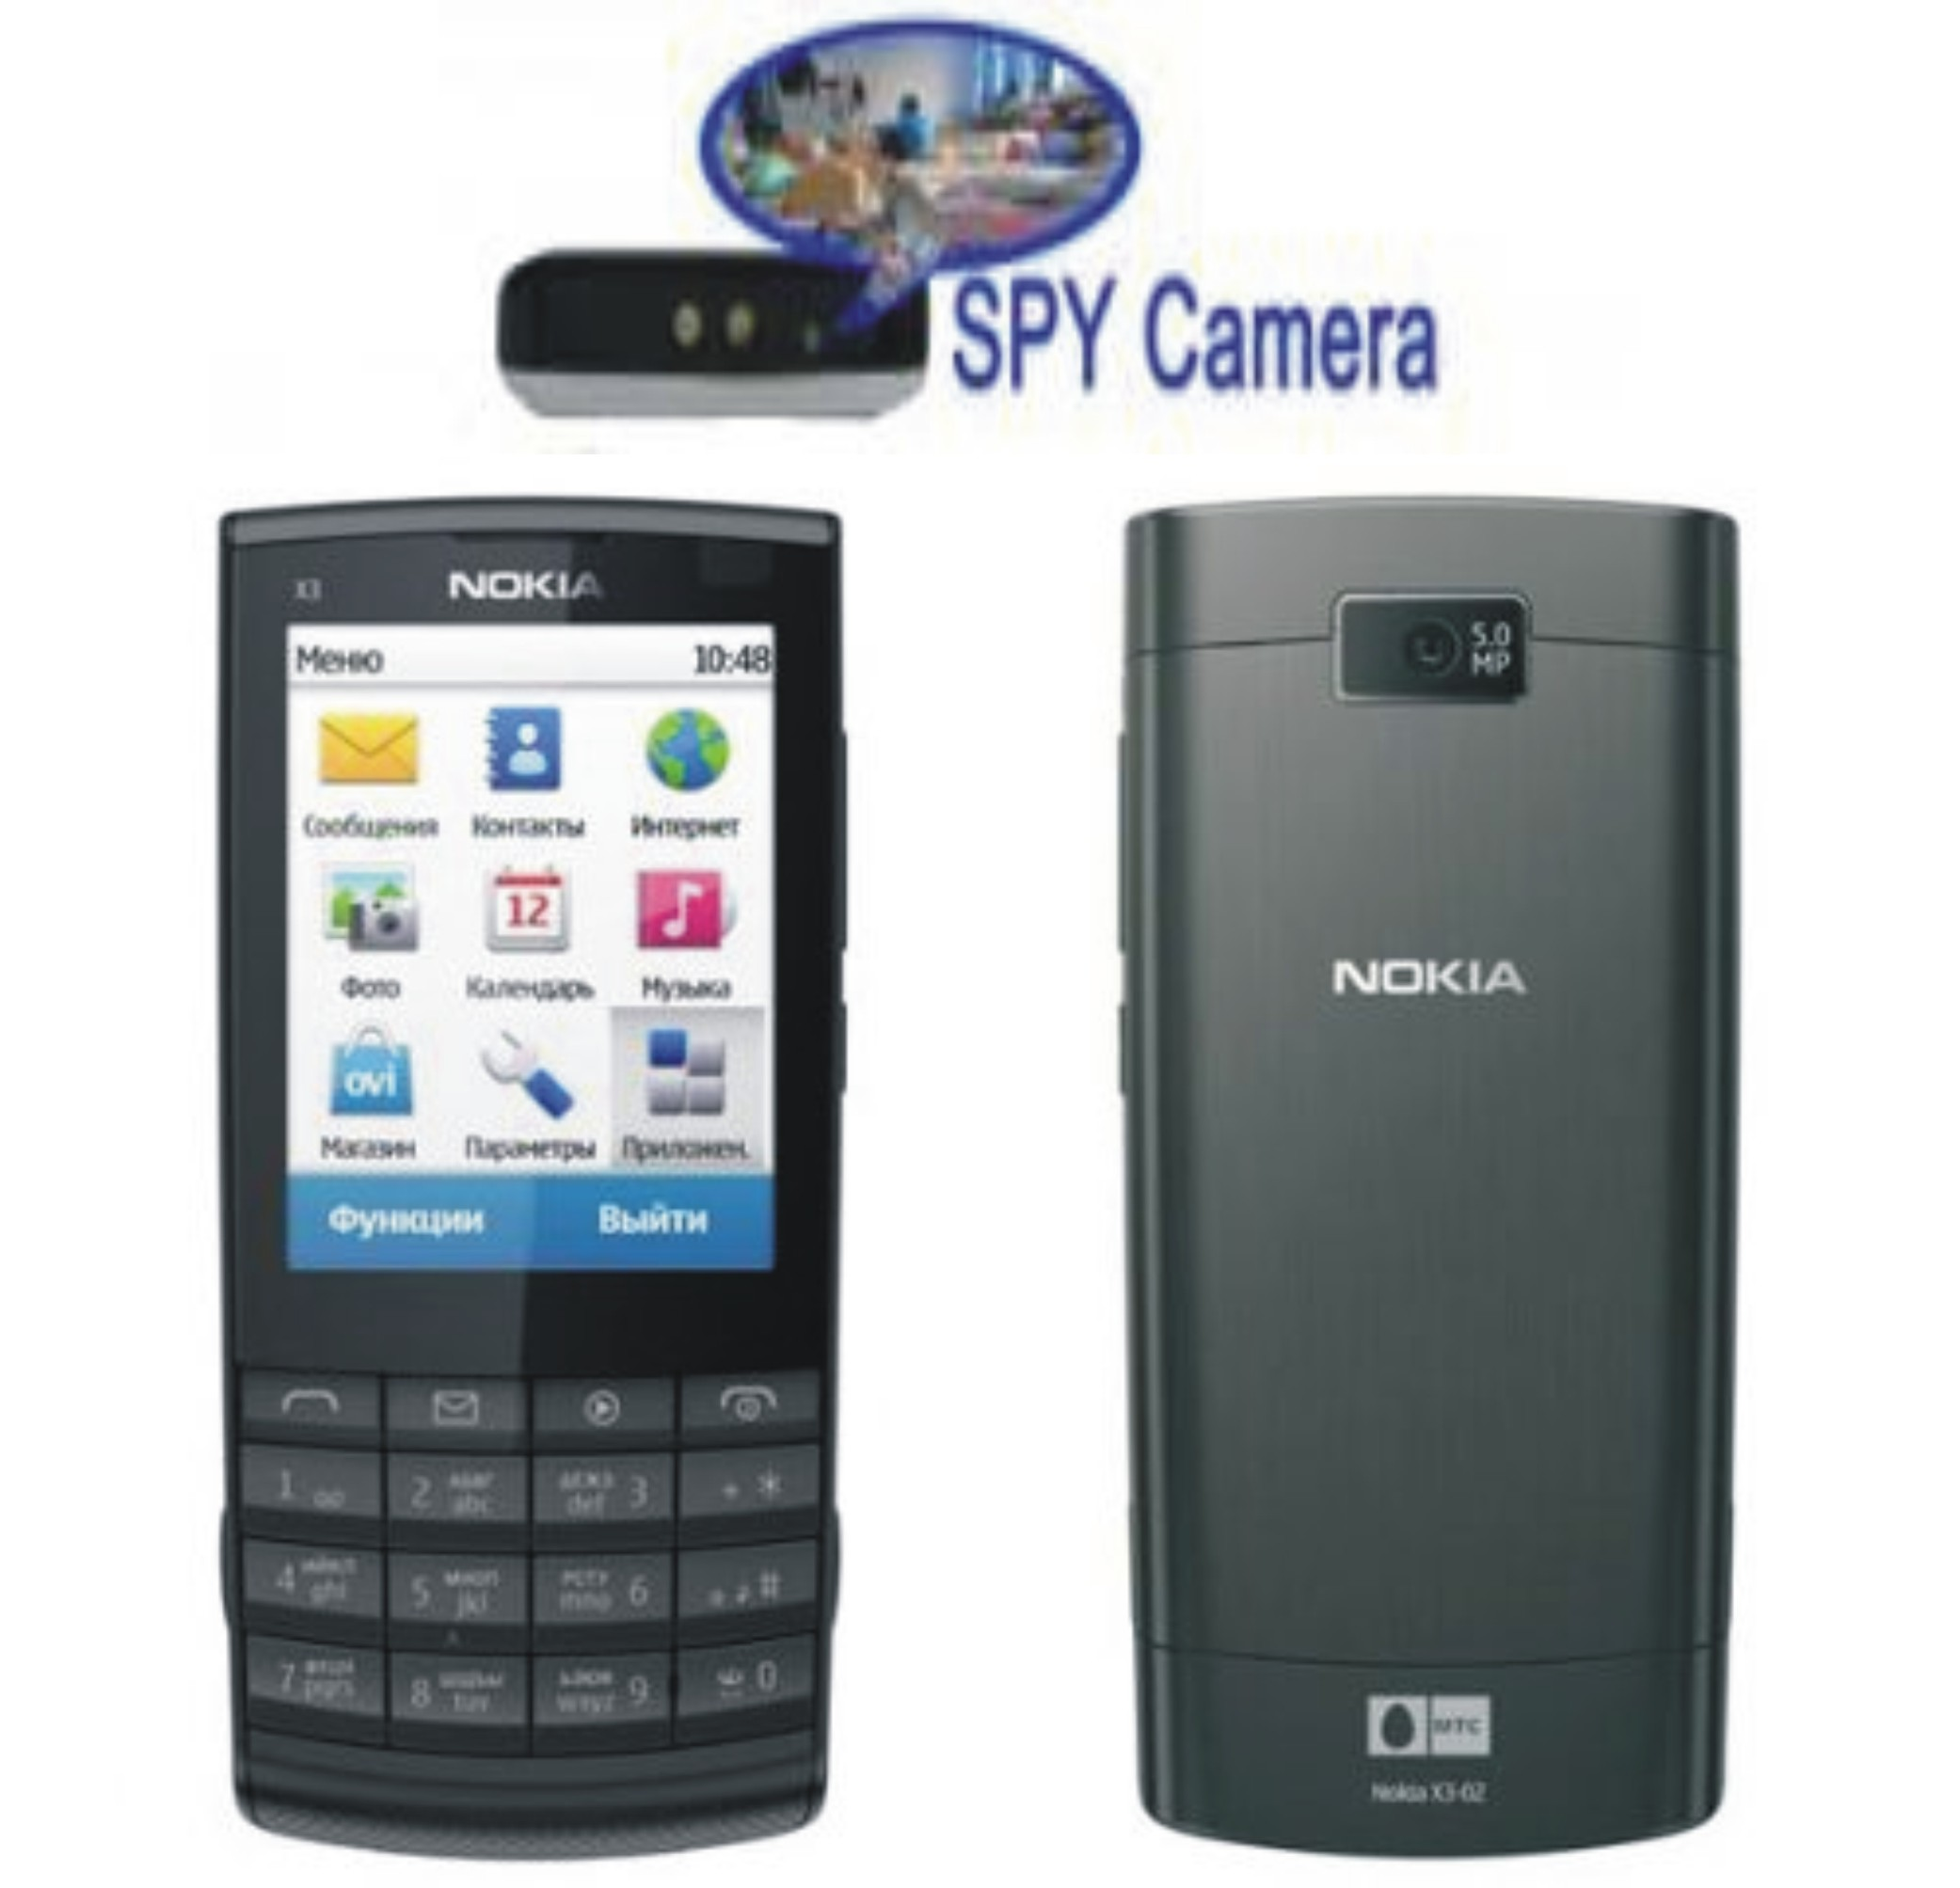 Spy Camera In Nokia Phone Touch Screen In Manali